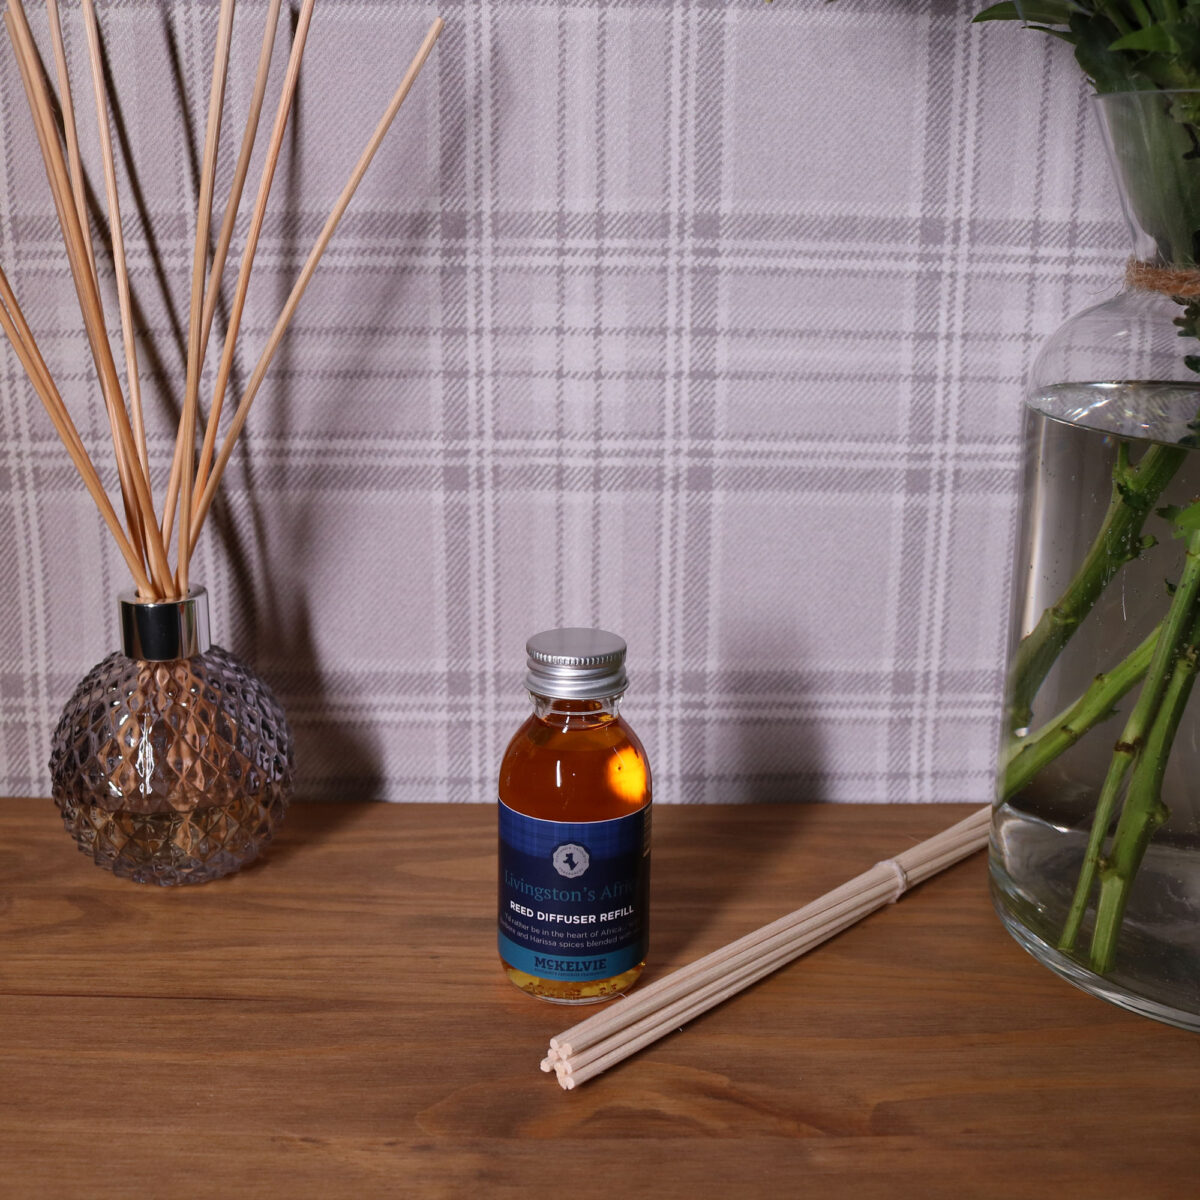 Livingstone's Africa Reed Diffuser Refill